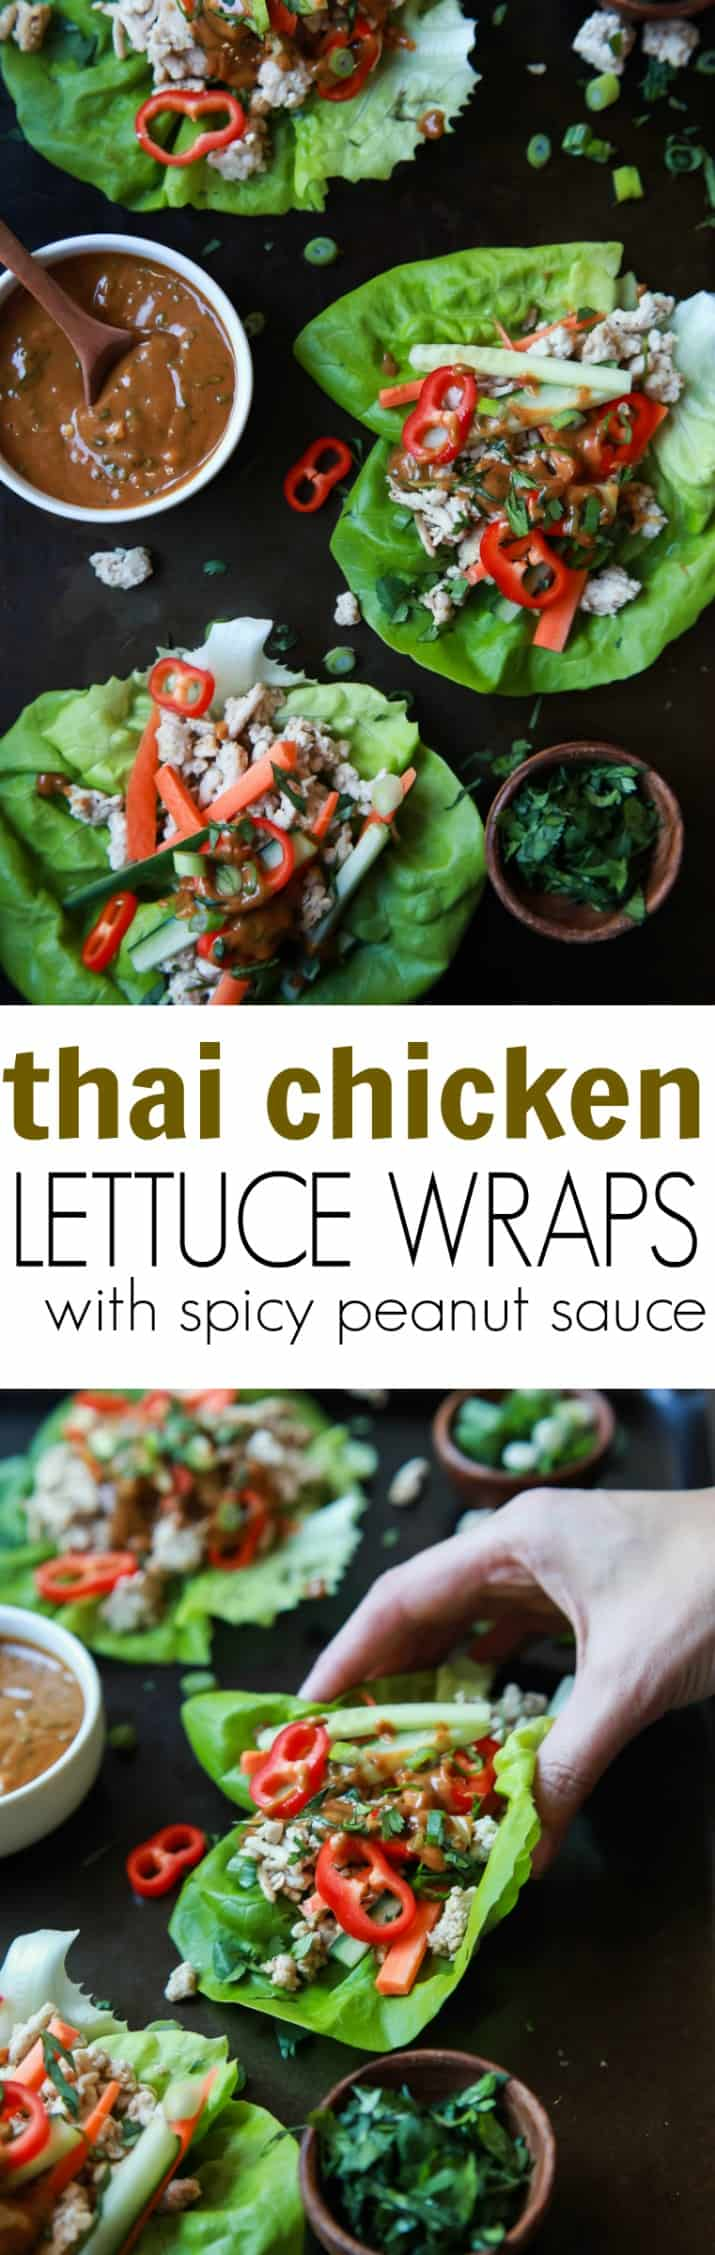 Thai Chicken Lettuce Wraps Easy And Healthy Appetizer Recipe